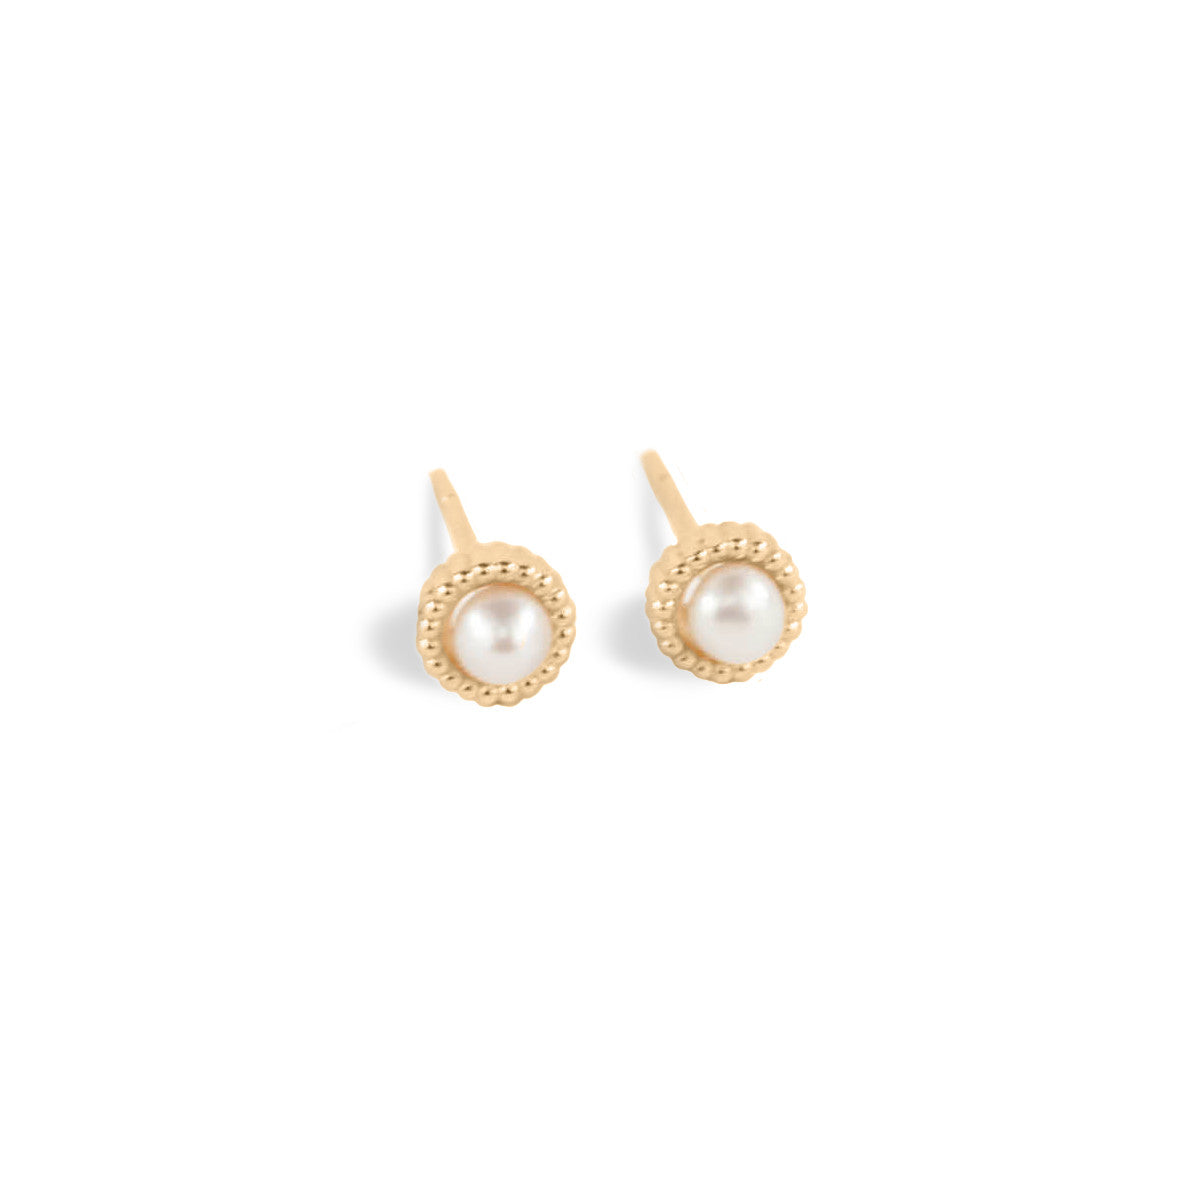 cttw pearls dp collection nwnuleal with h gold amazon clarity com natural earrings tara single cultured color galaxy diamonds sea g pearl south